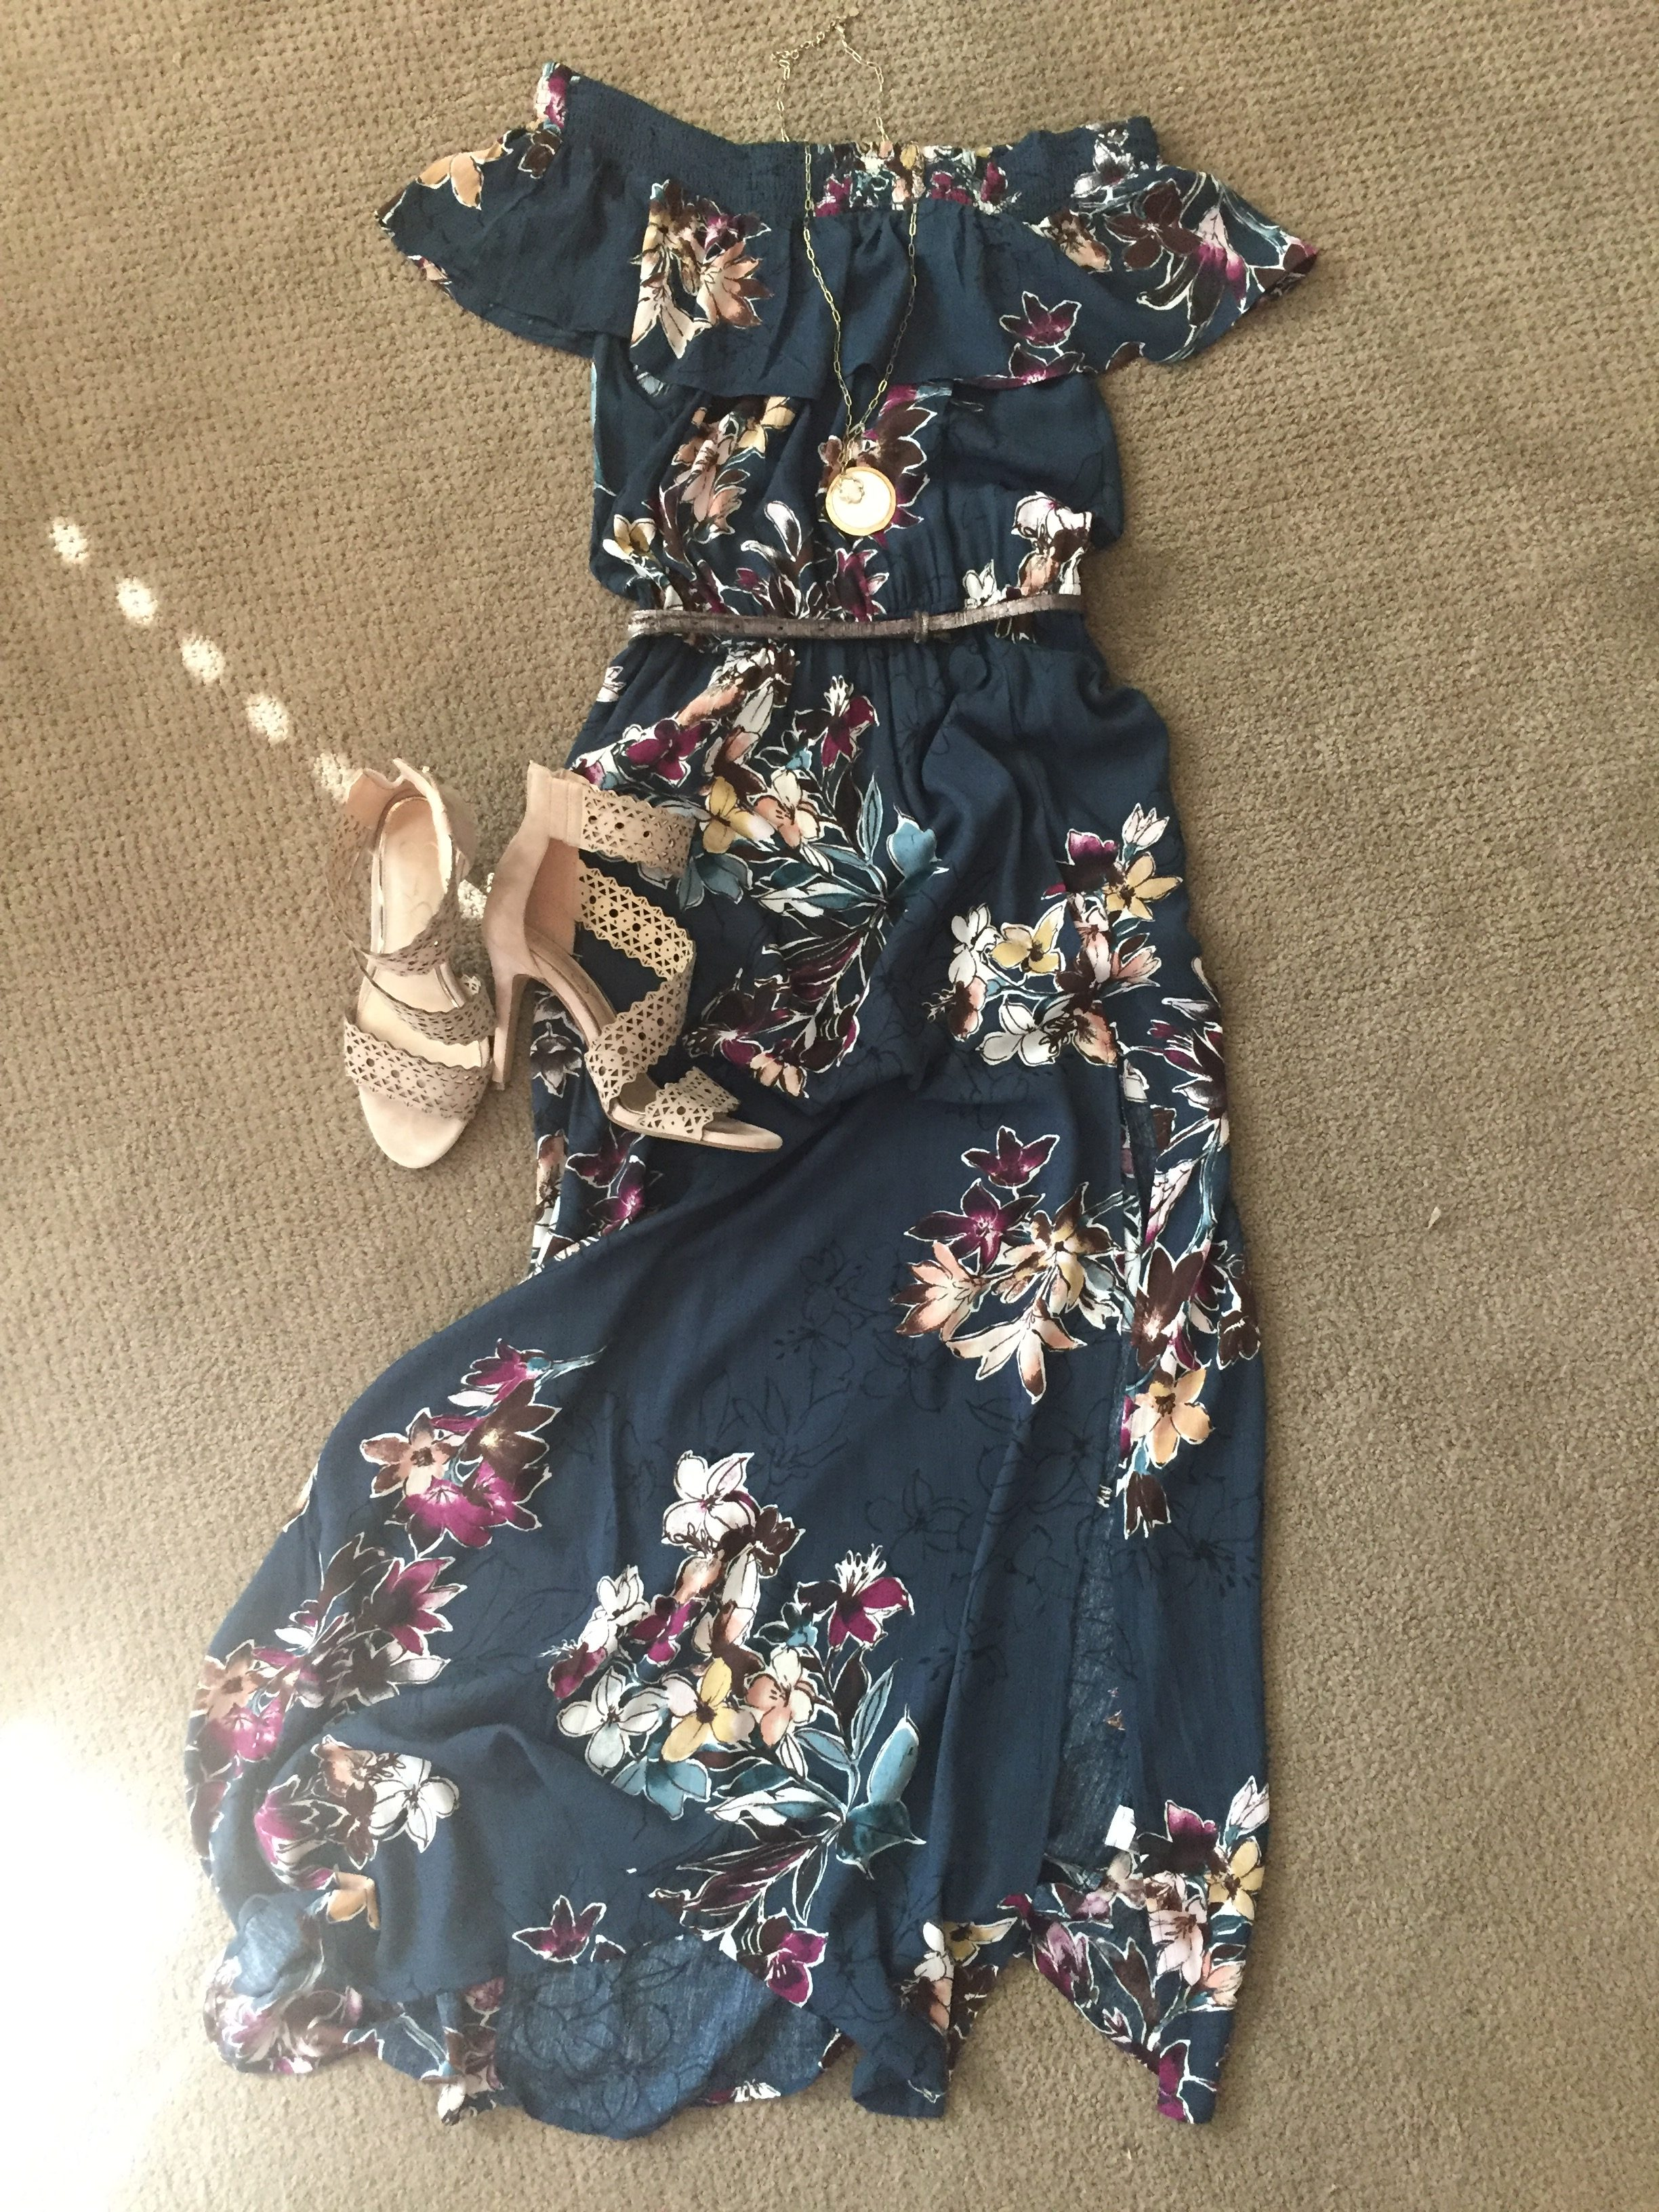 Mother's Day, ootd, my style, method39, target, dsw, maxi dress, stylepost, fashion blogger, fashion blogger, style tips, find your style, pursue pretty, floral, off the shoulder, affordable style, target, heels, jessica simpson, summer style